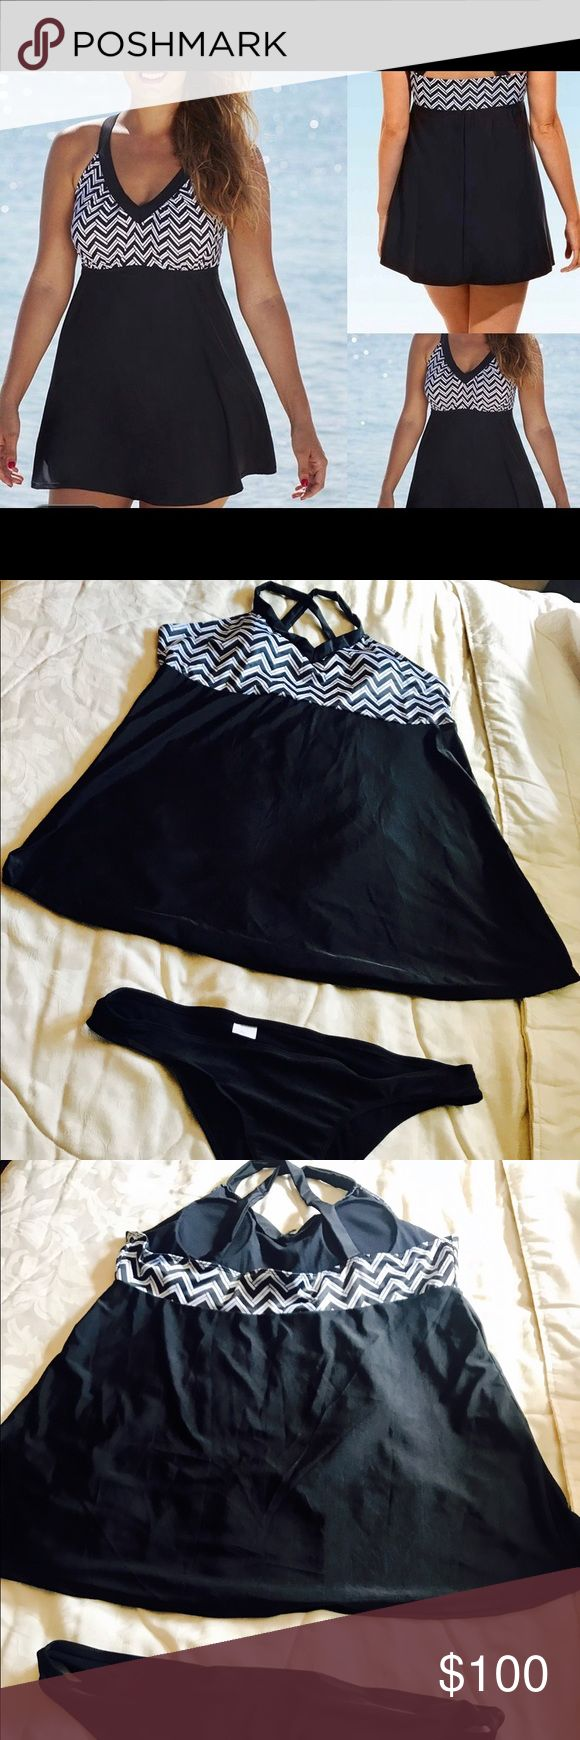 Bathing suite 5xlg but breast size only like a D Black and white two piece dress look, new noname Swim